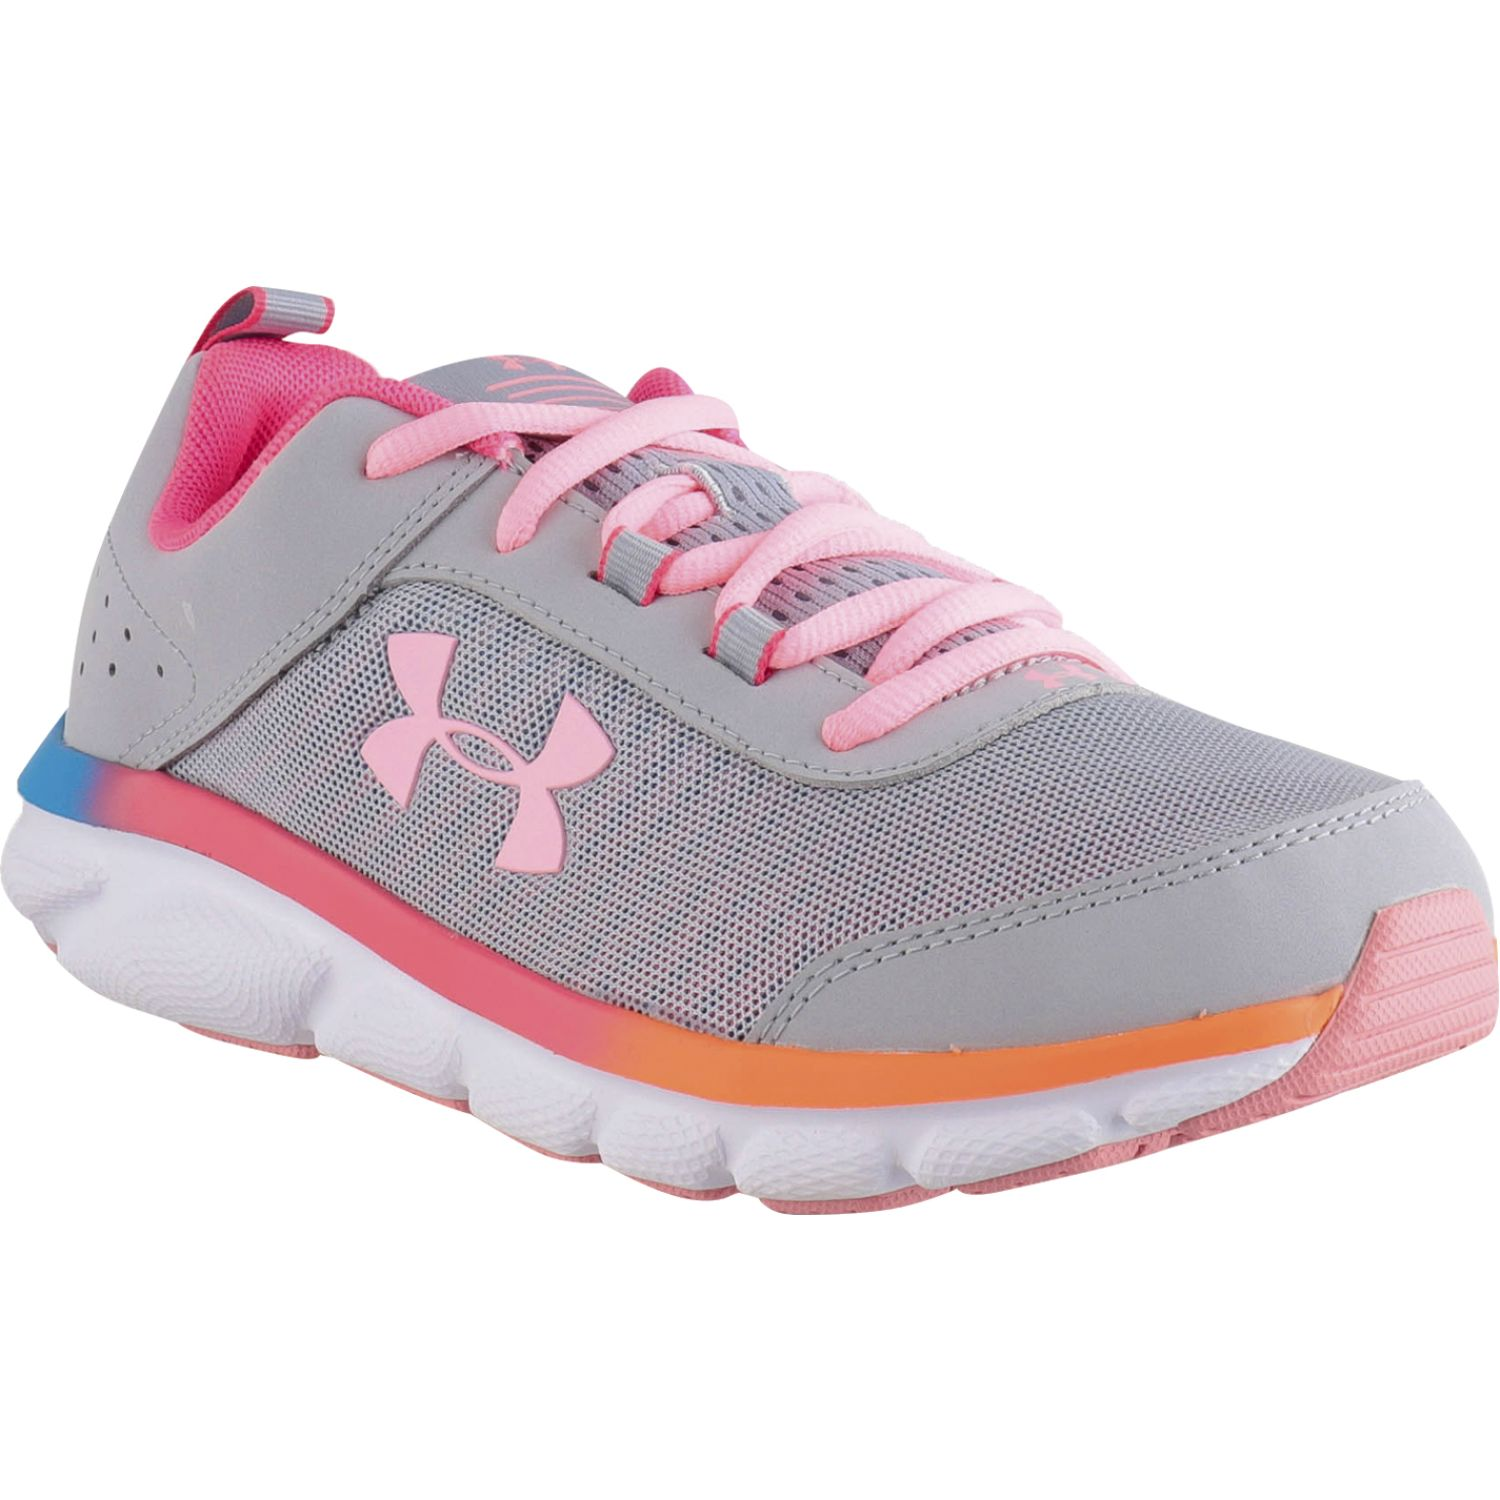 Under Armour ua gs assert 8 Gris / rosado Chicas